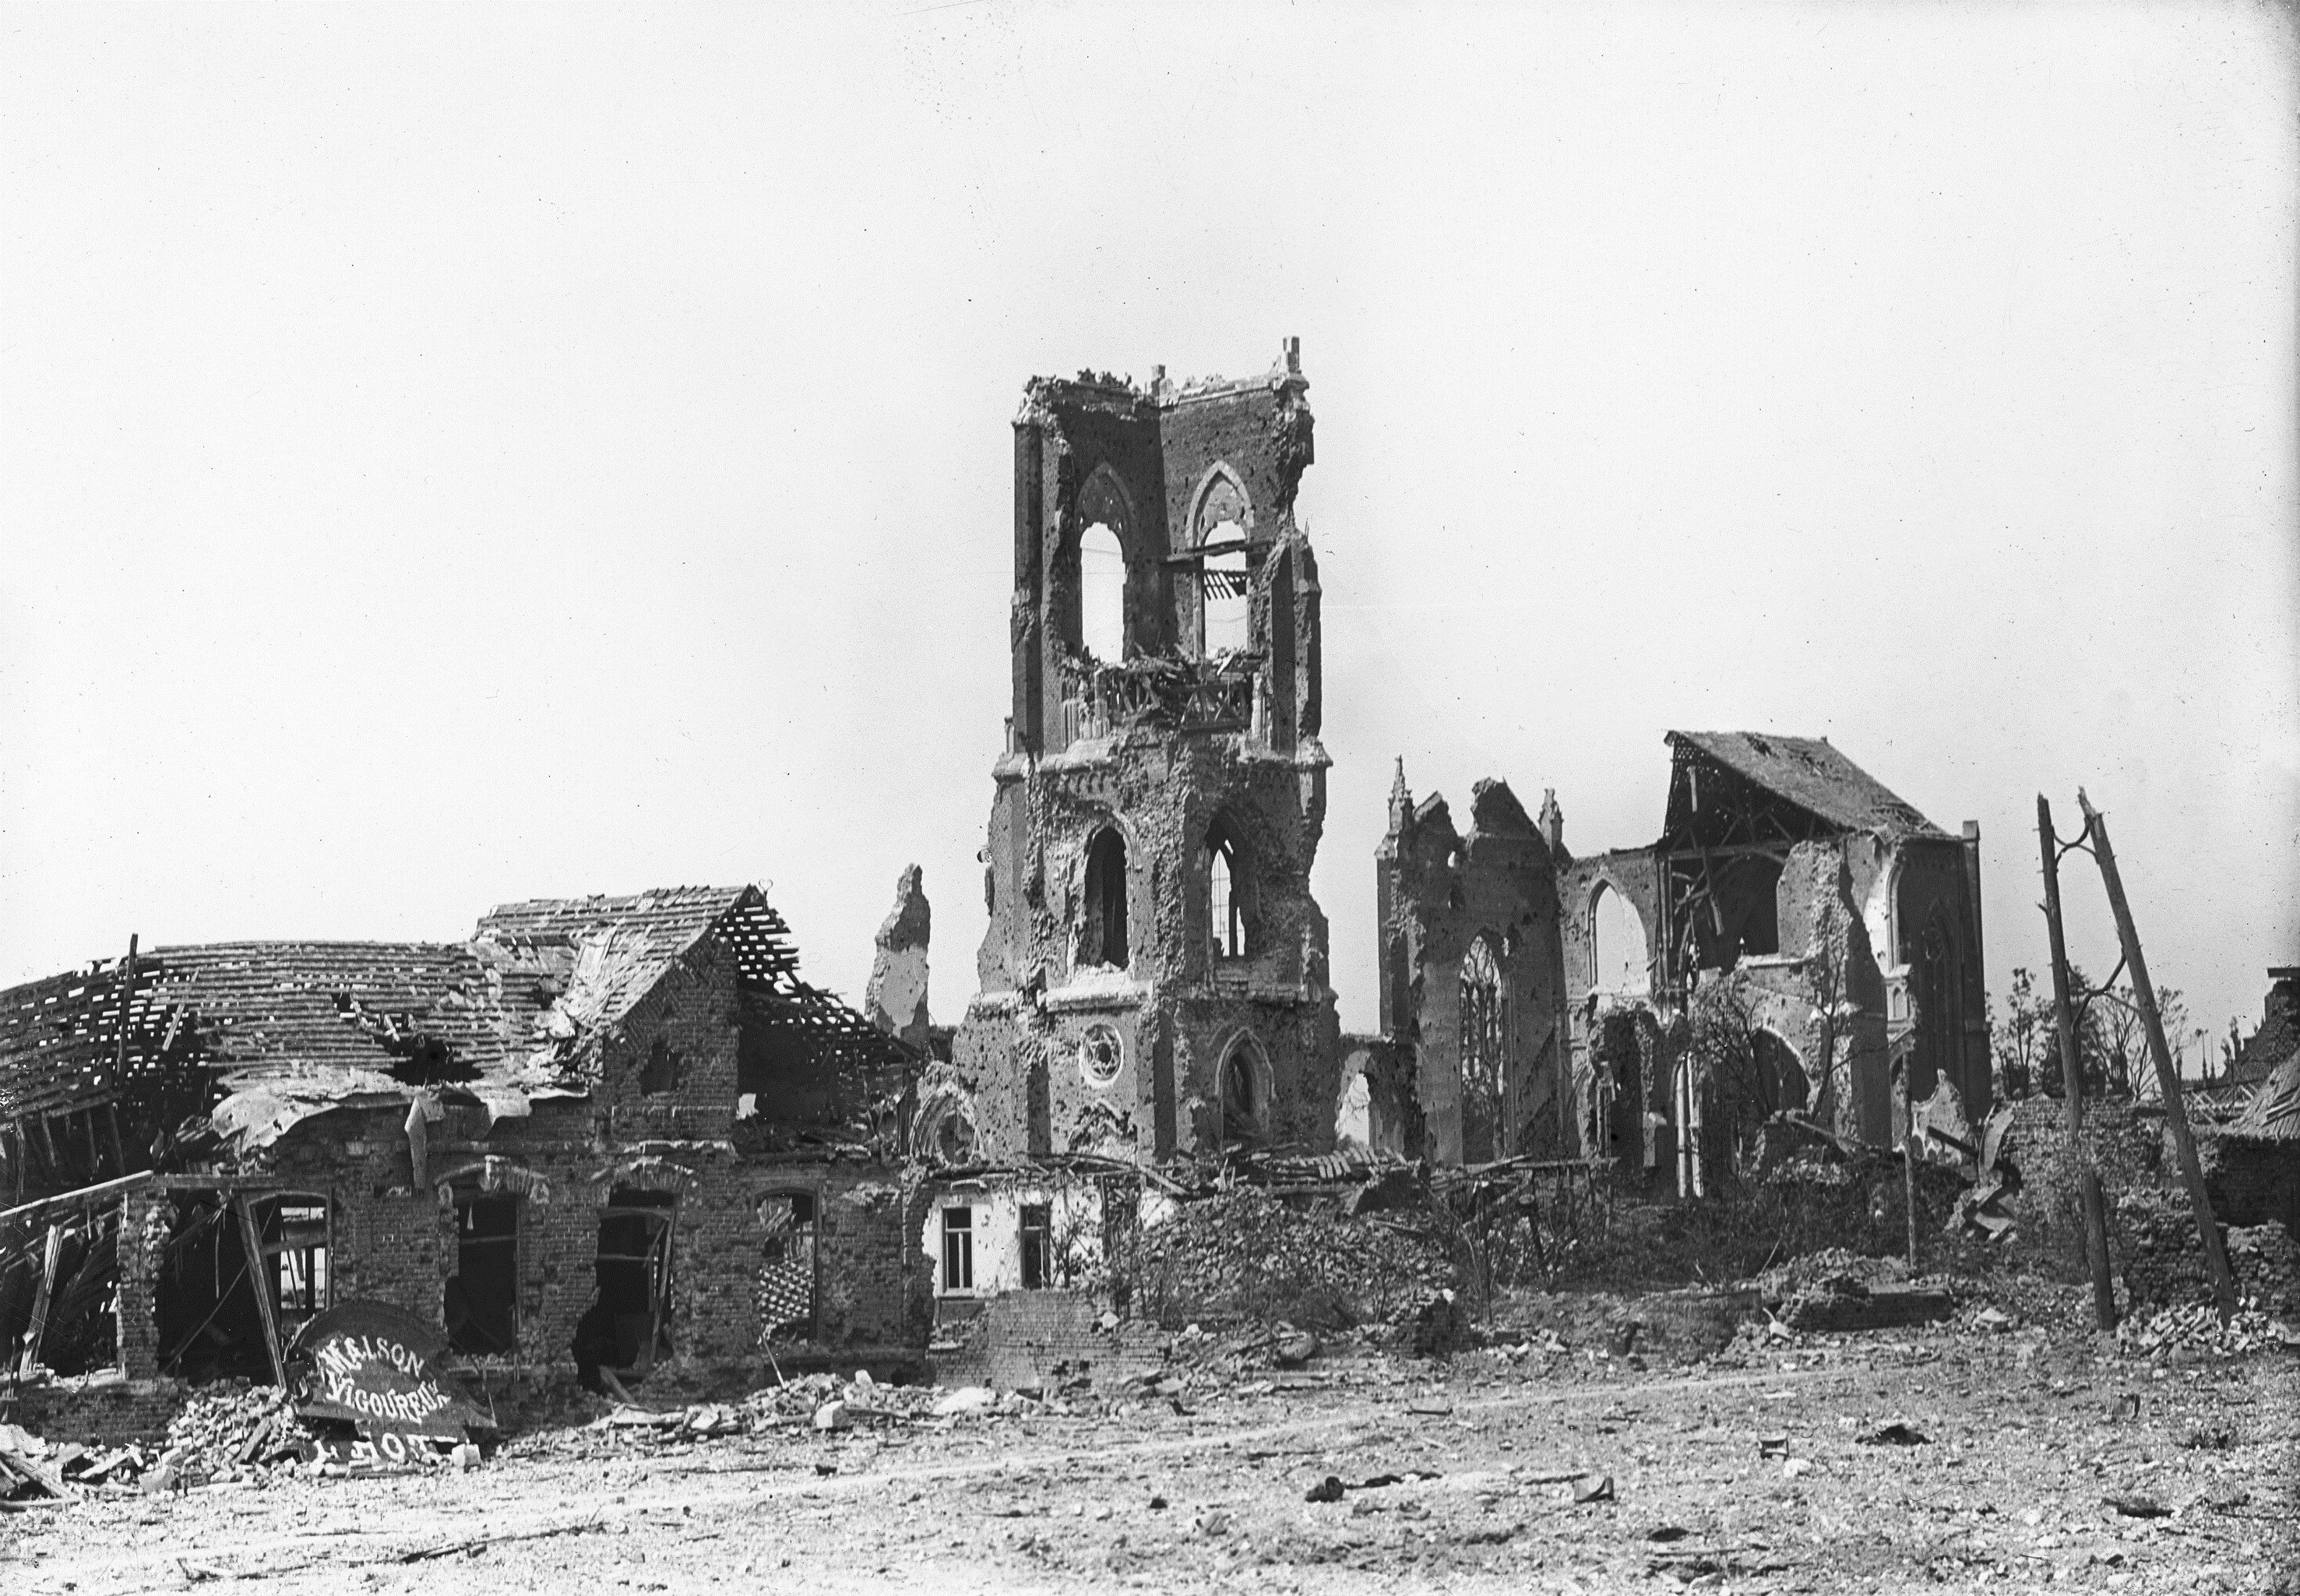 The ruined Church in Villers-Bretonneux after the second Battle; image courtesy of the Australian War Memorial